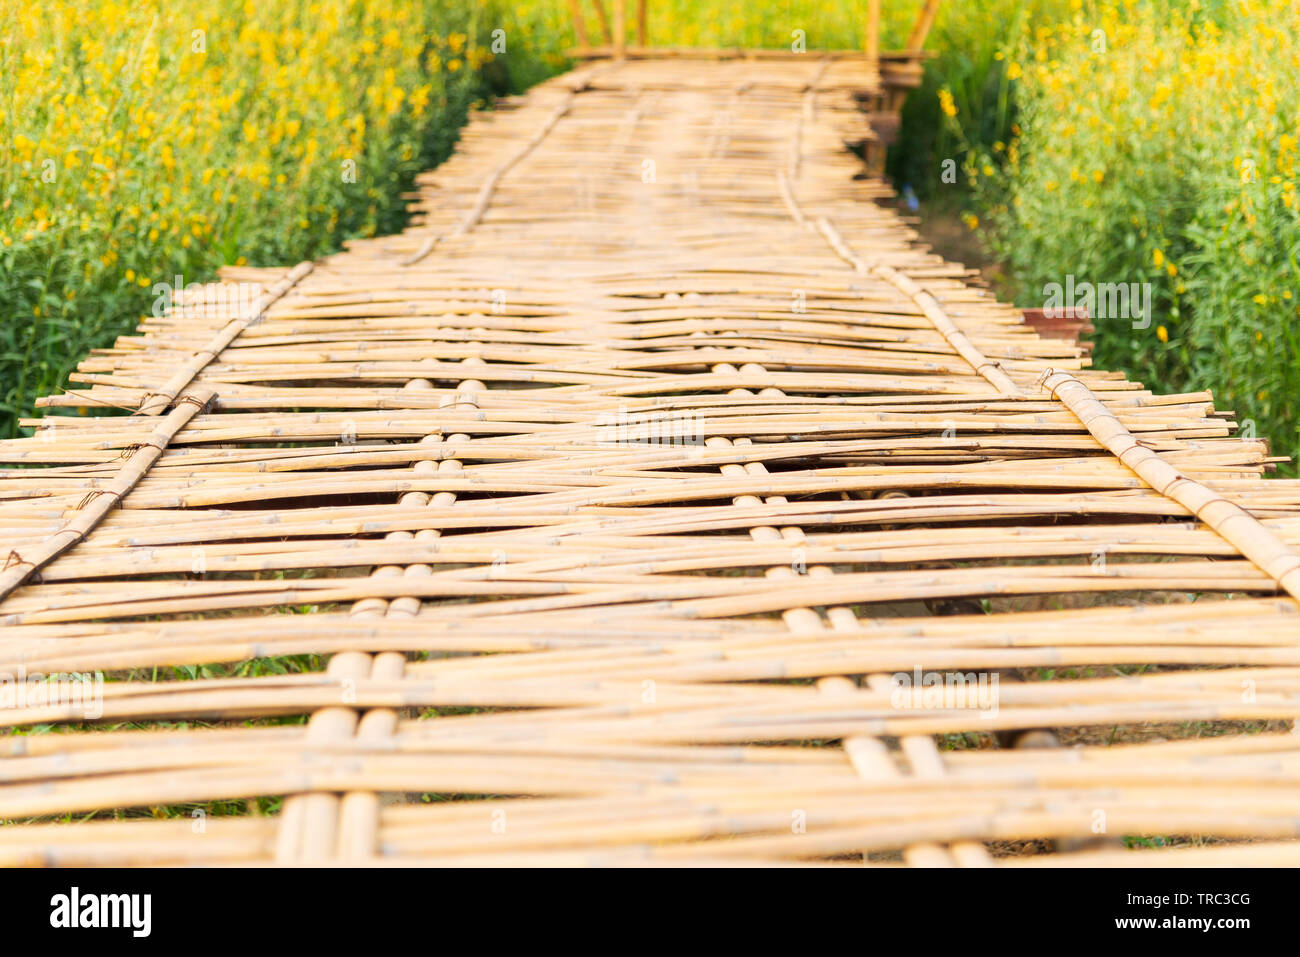 Bamboo weave walk way bridge with Yellow flowers field in sunny day - Stock Image